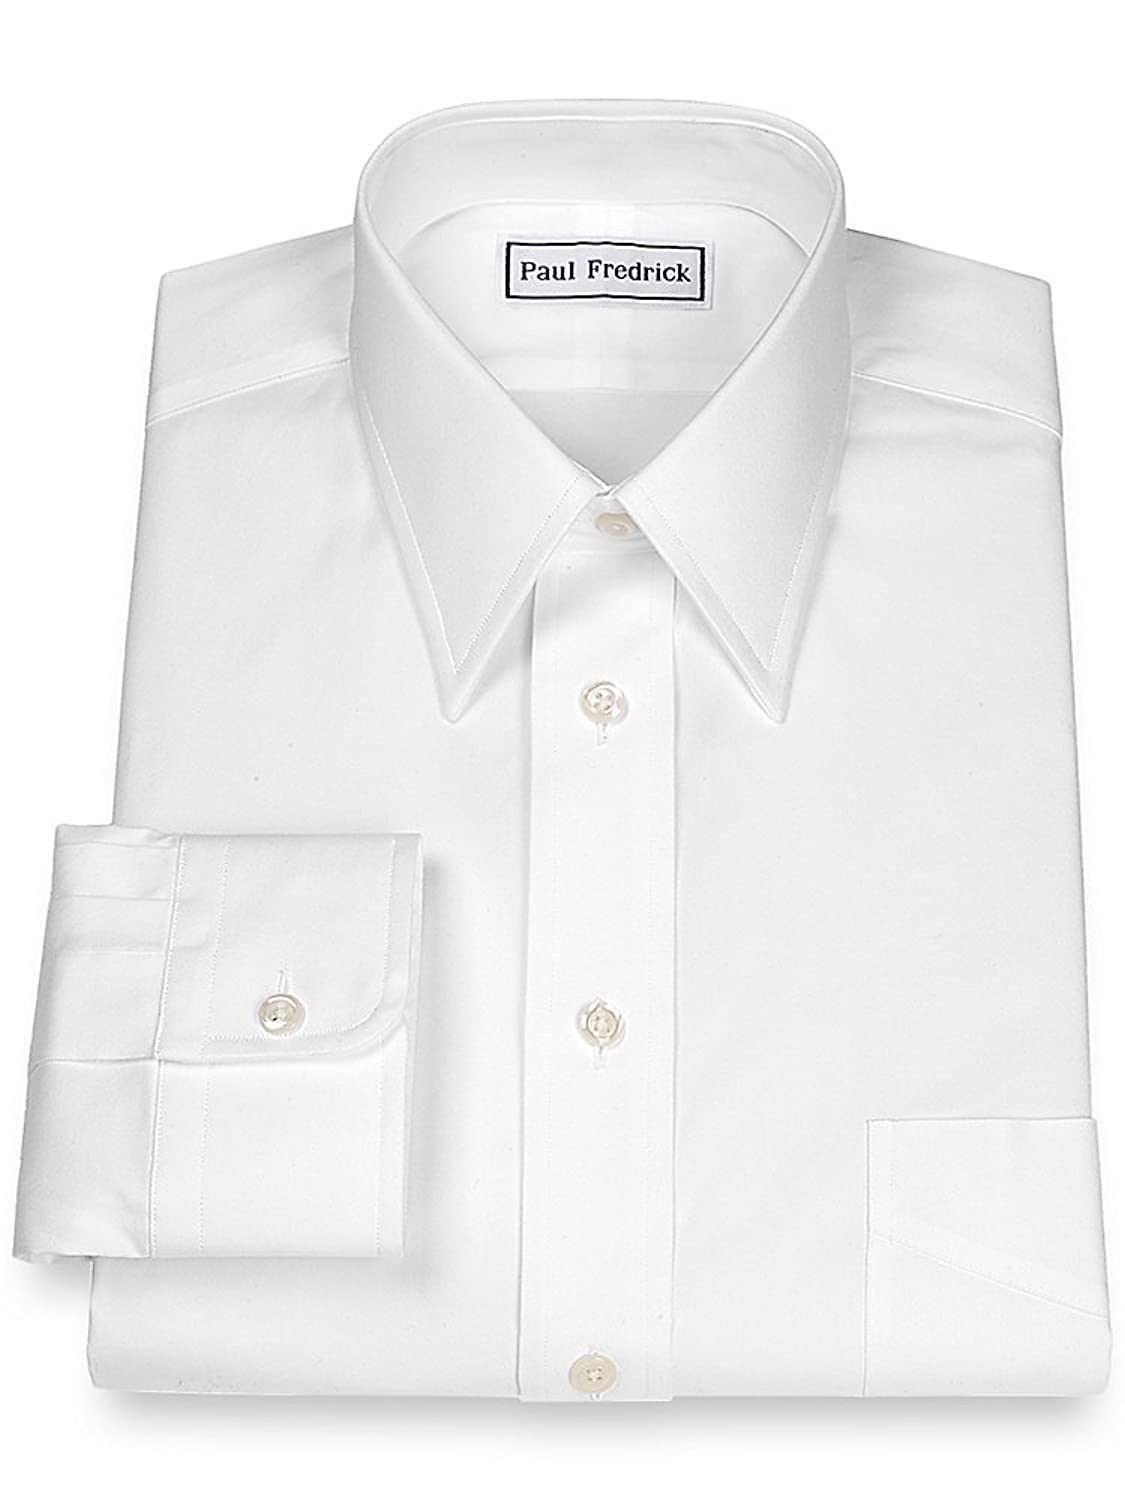 Paul Fredrick Men's Slim Fit Pinpoint Straight Collar Dress Shirt